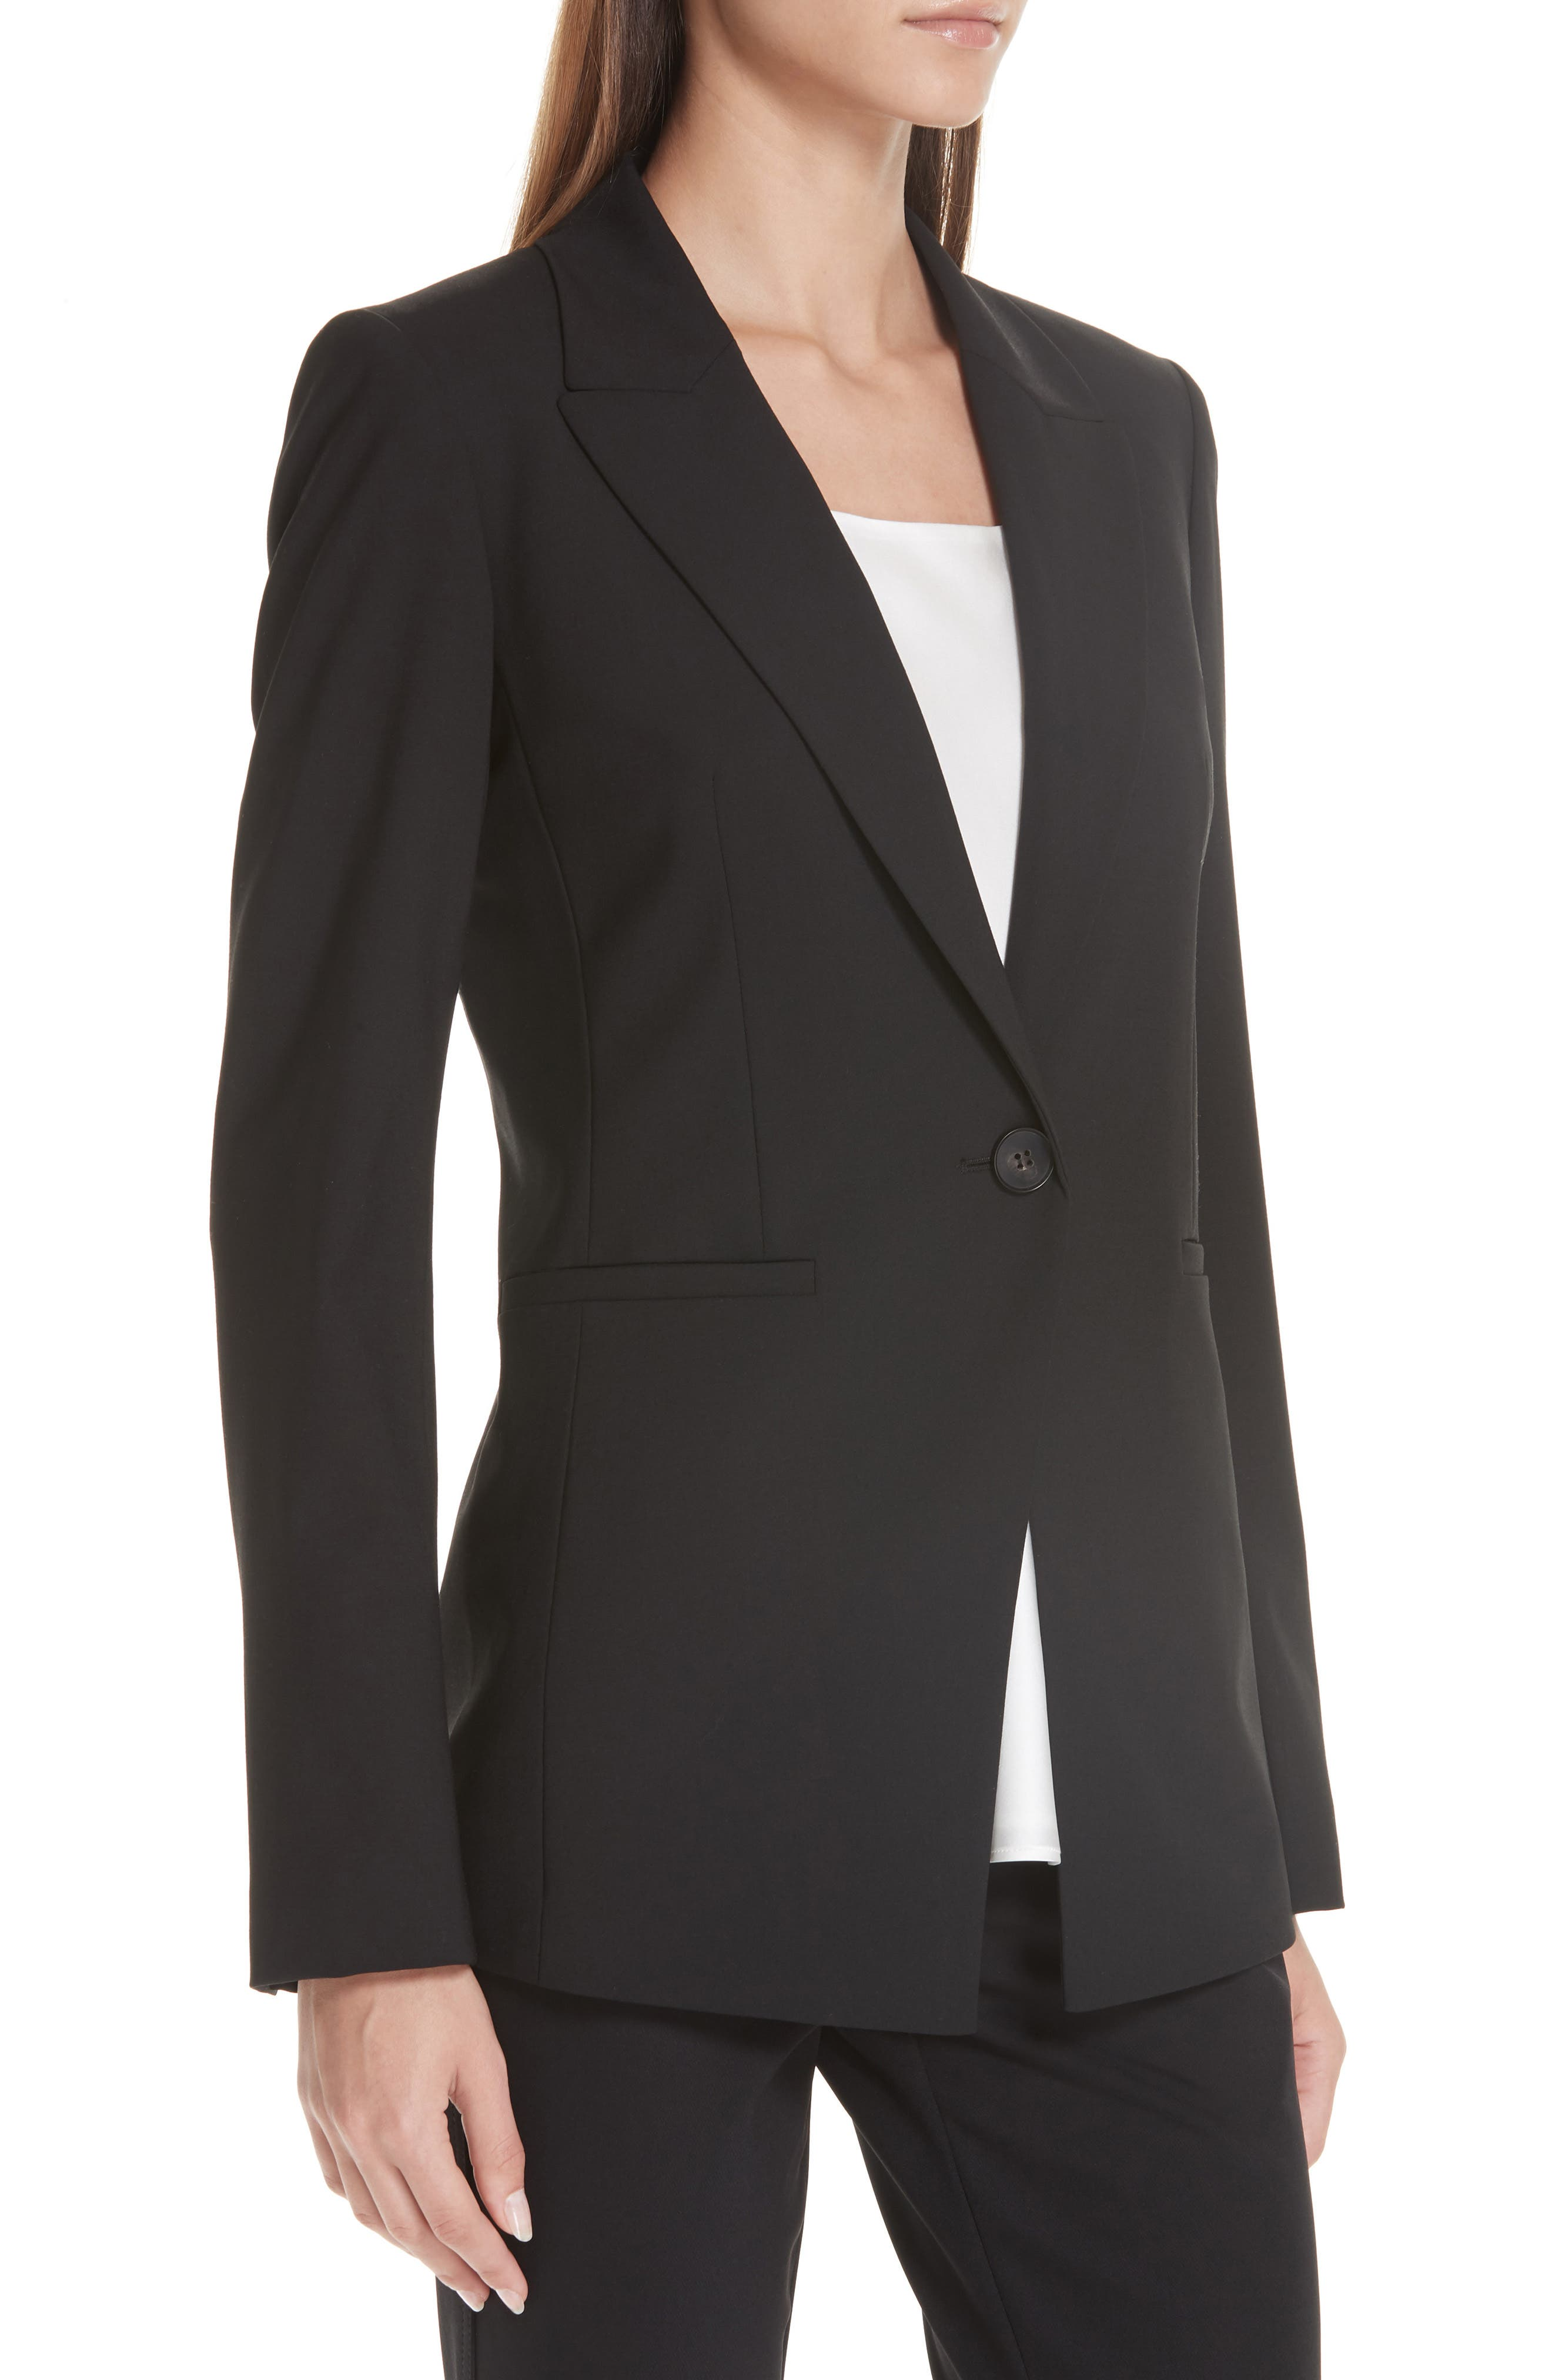 LAFAYETTE 148 NEW YORK, Charice Stretch Wool Jacket, Alternate thumbnail 6, color, BLACK